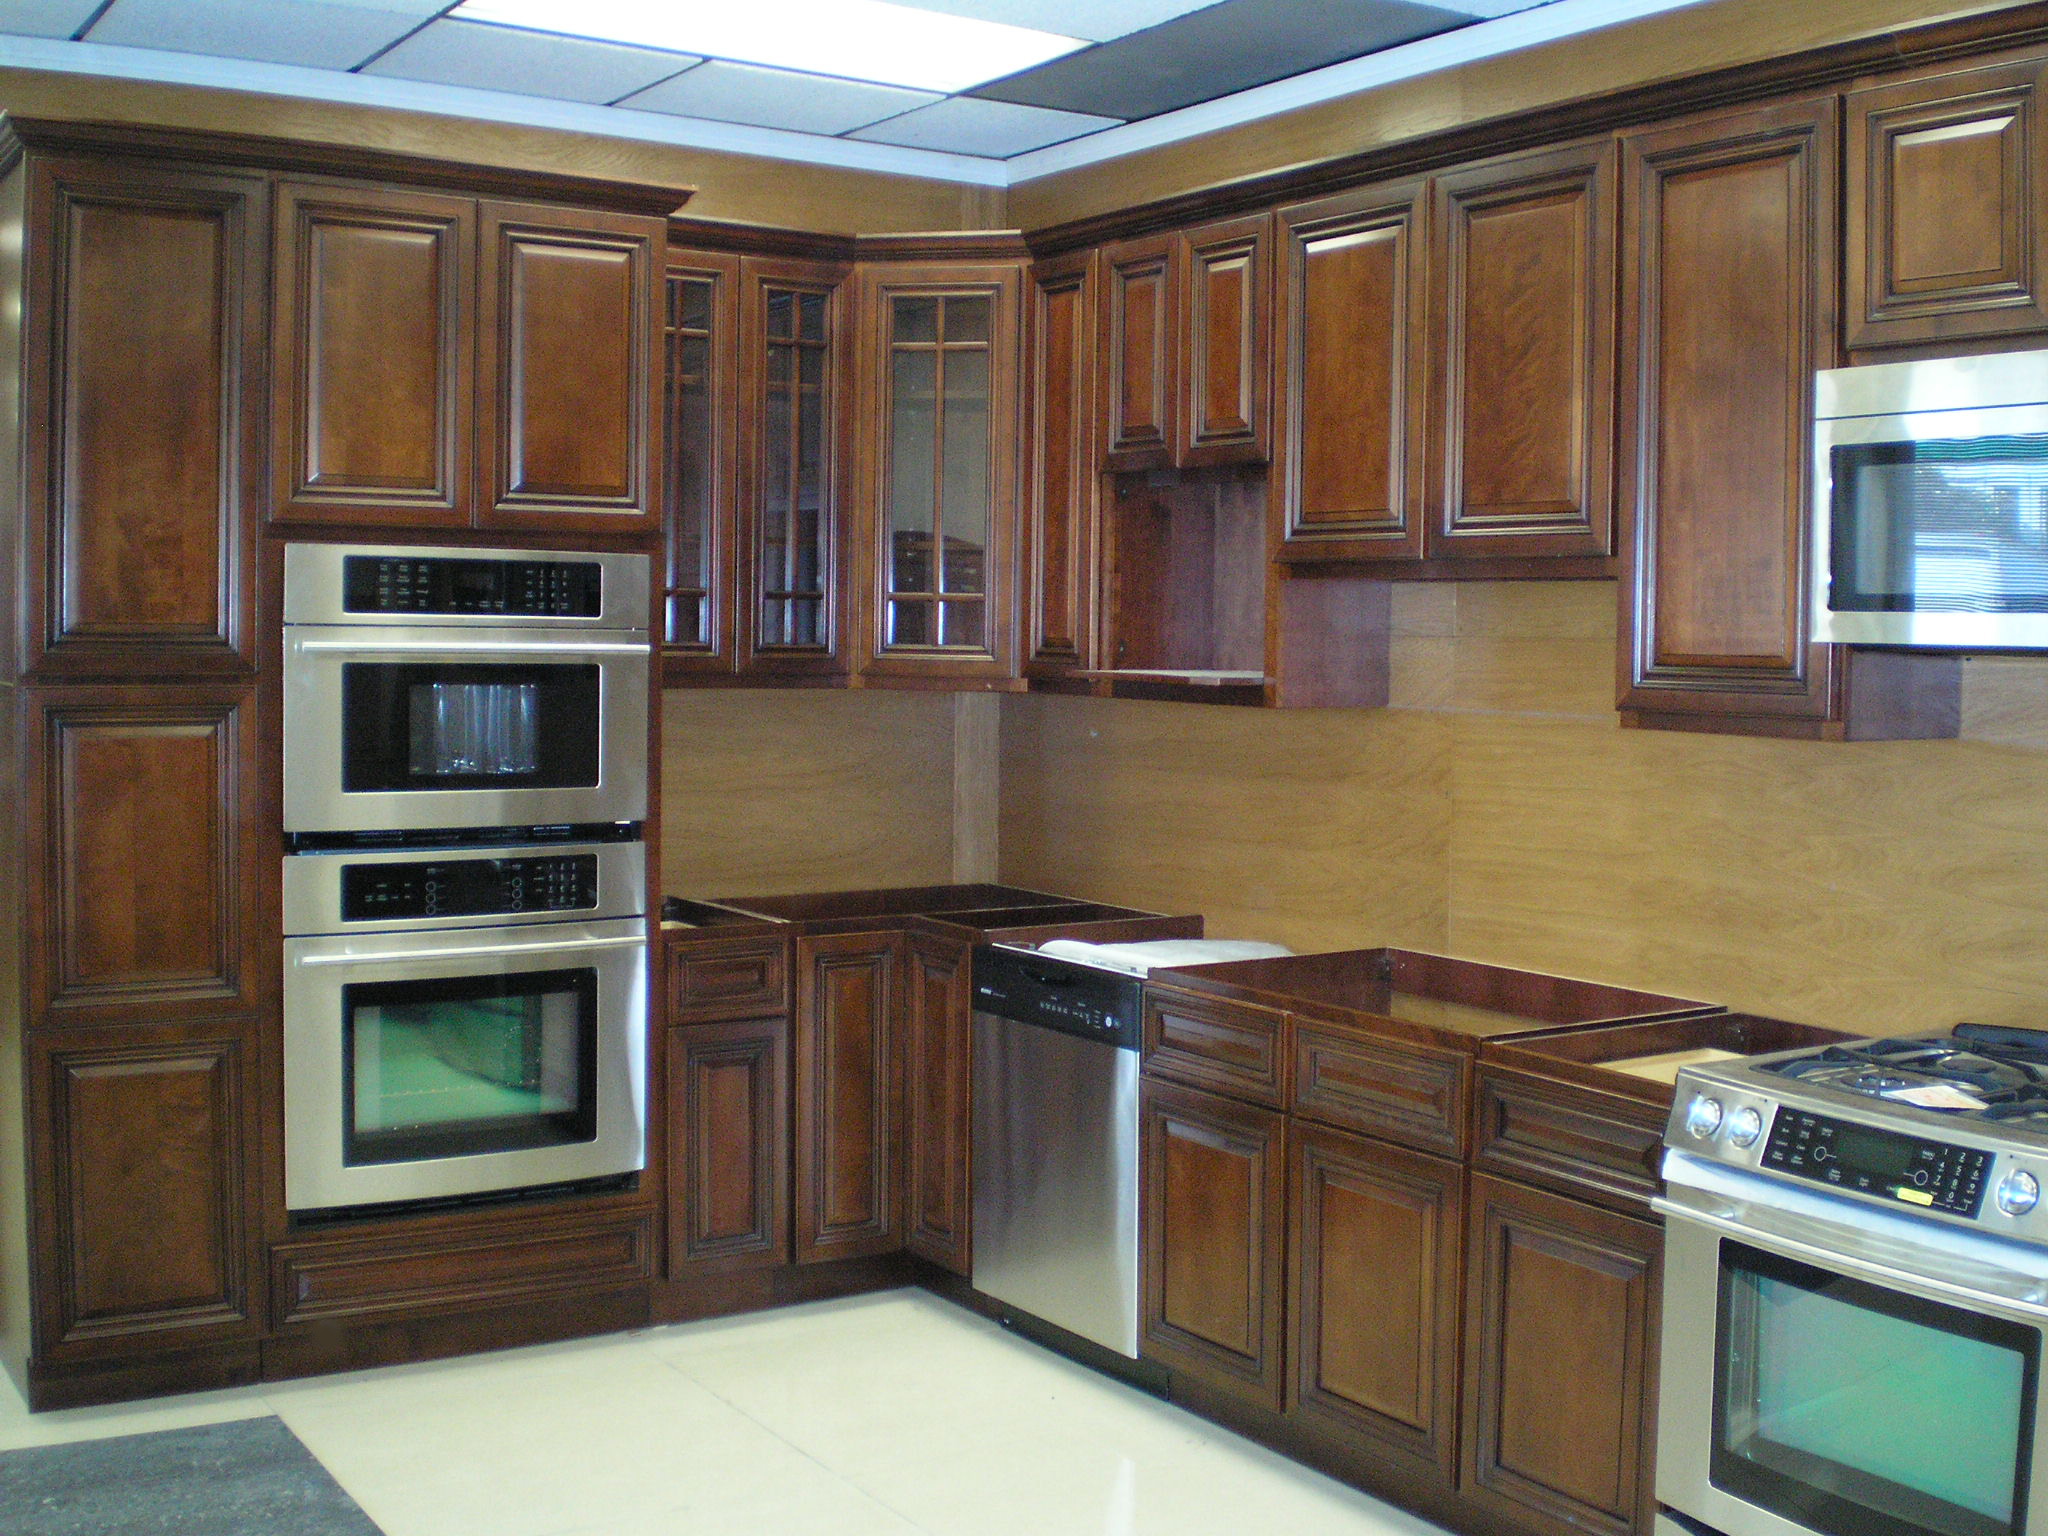 kitchen with wooden cabinets n oak kitchen chairs Wood Kitchen Furniture Gallery Of Our Exclusive All Wood Cabinetry E